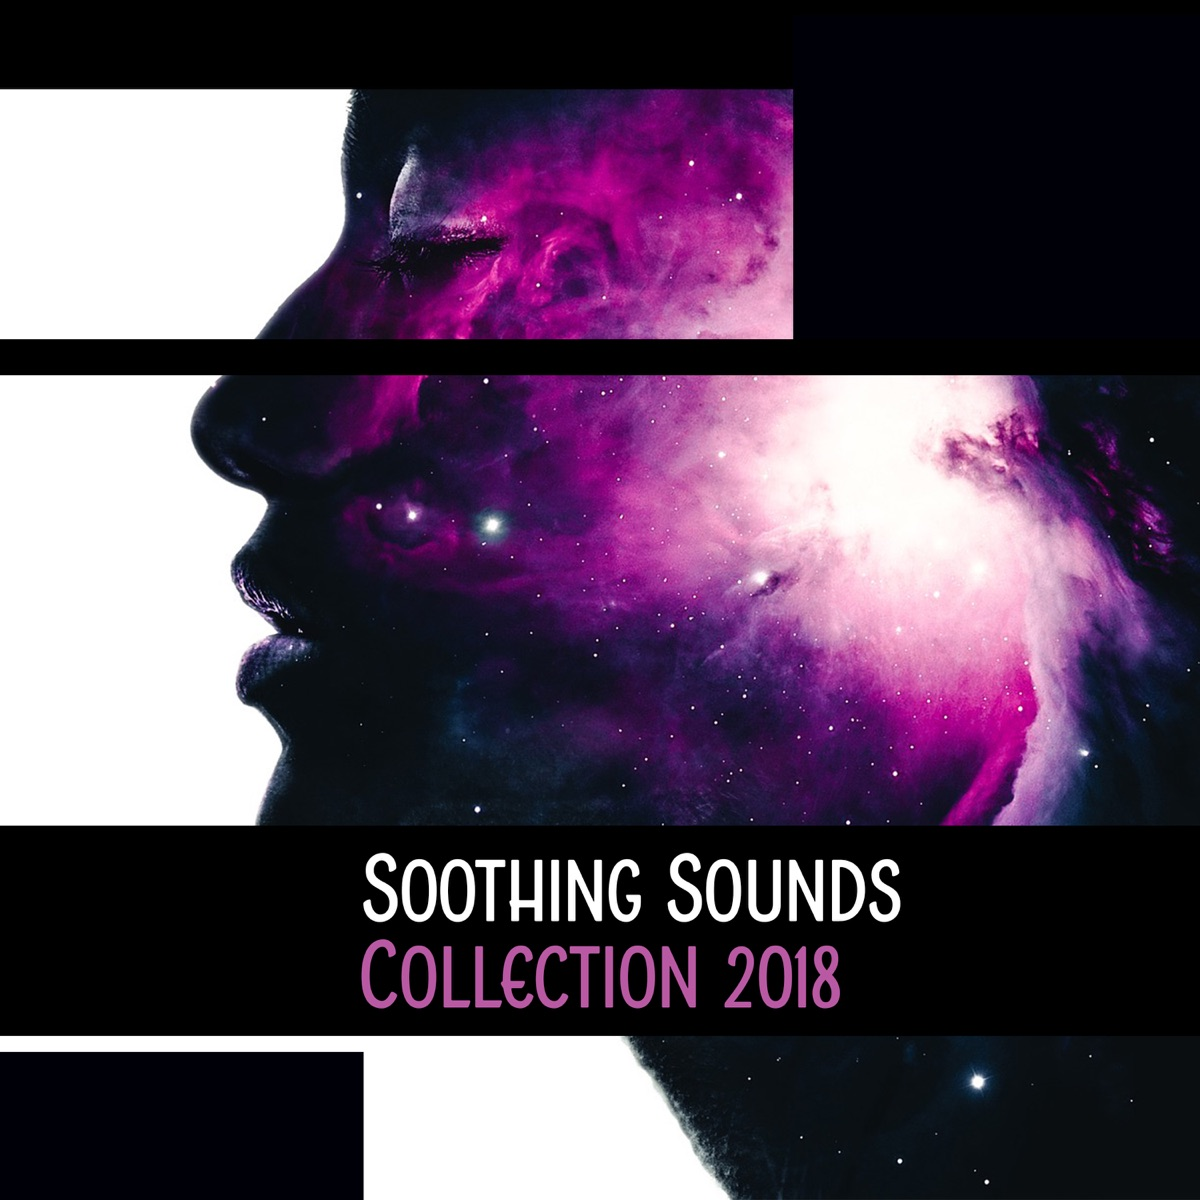 Soothing Sounds Collection 2018: Relaxing Instrumentals Mix Album